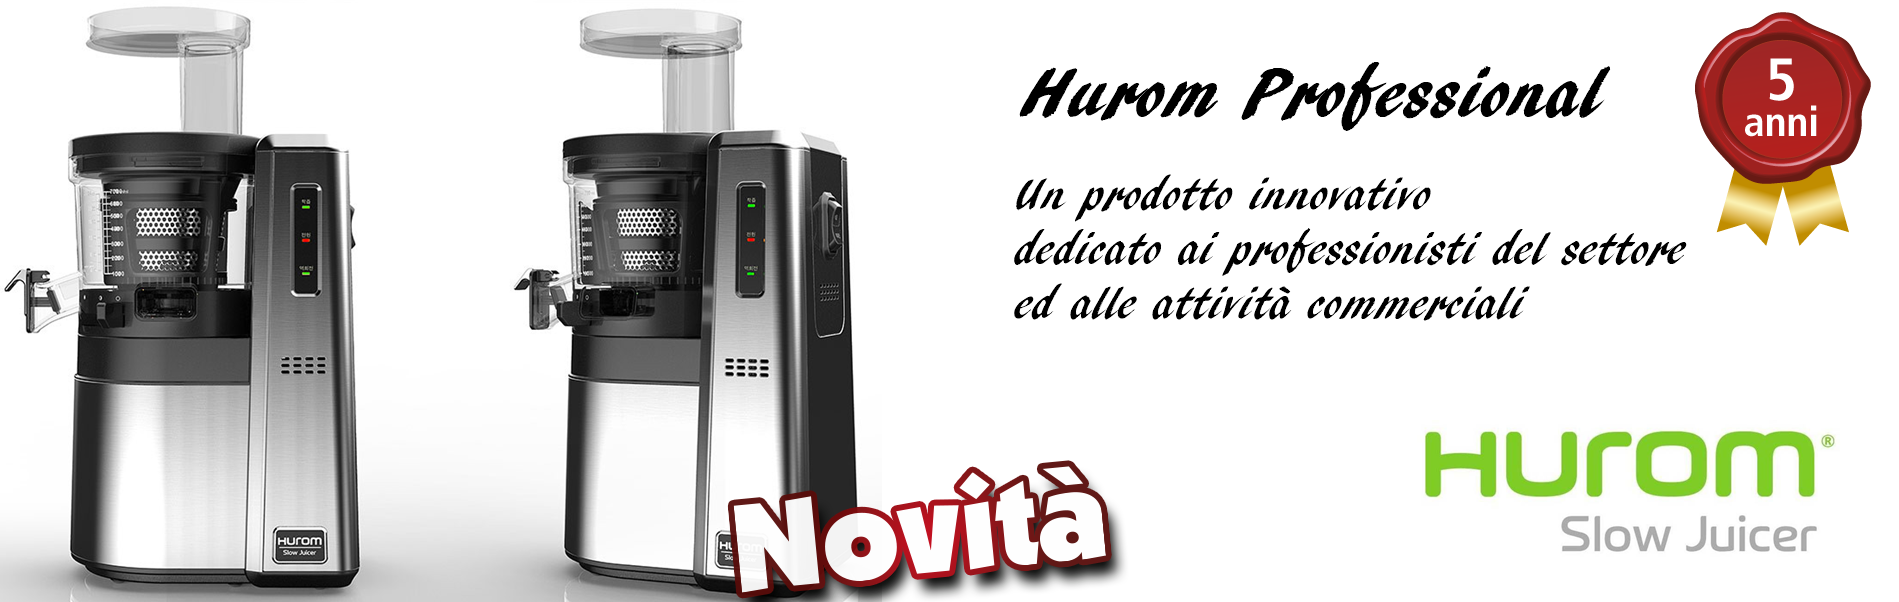 Hurom Professional